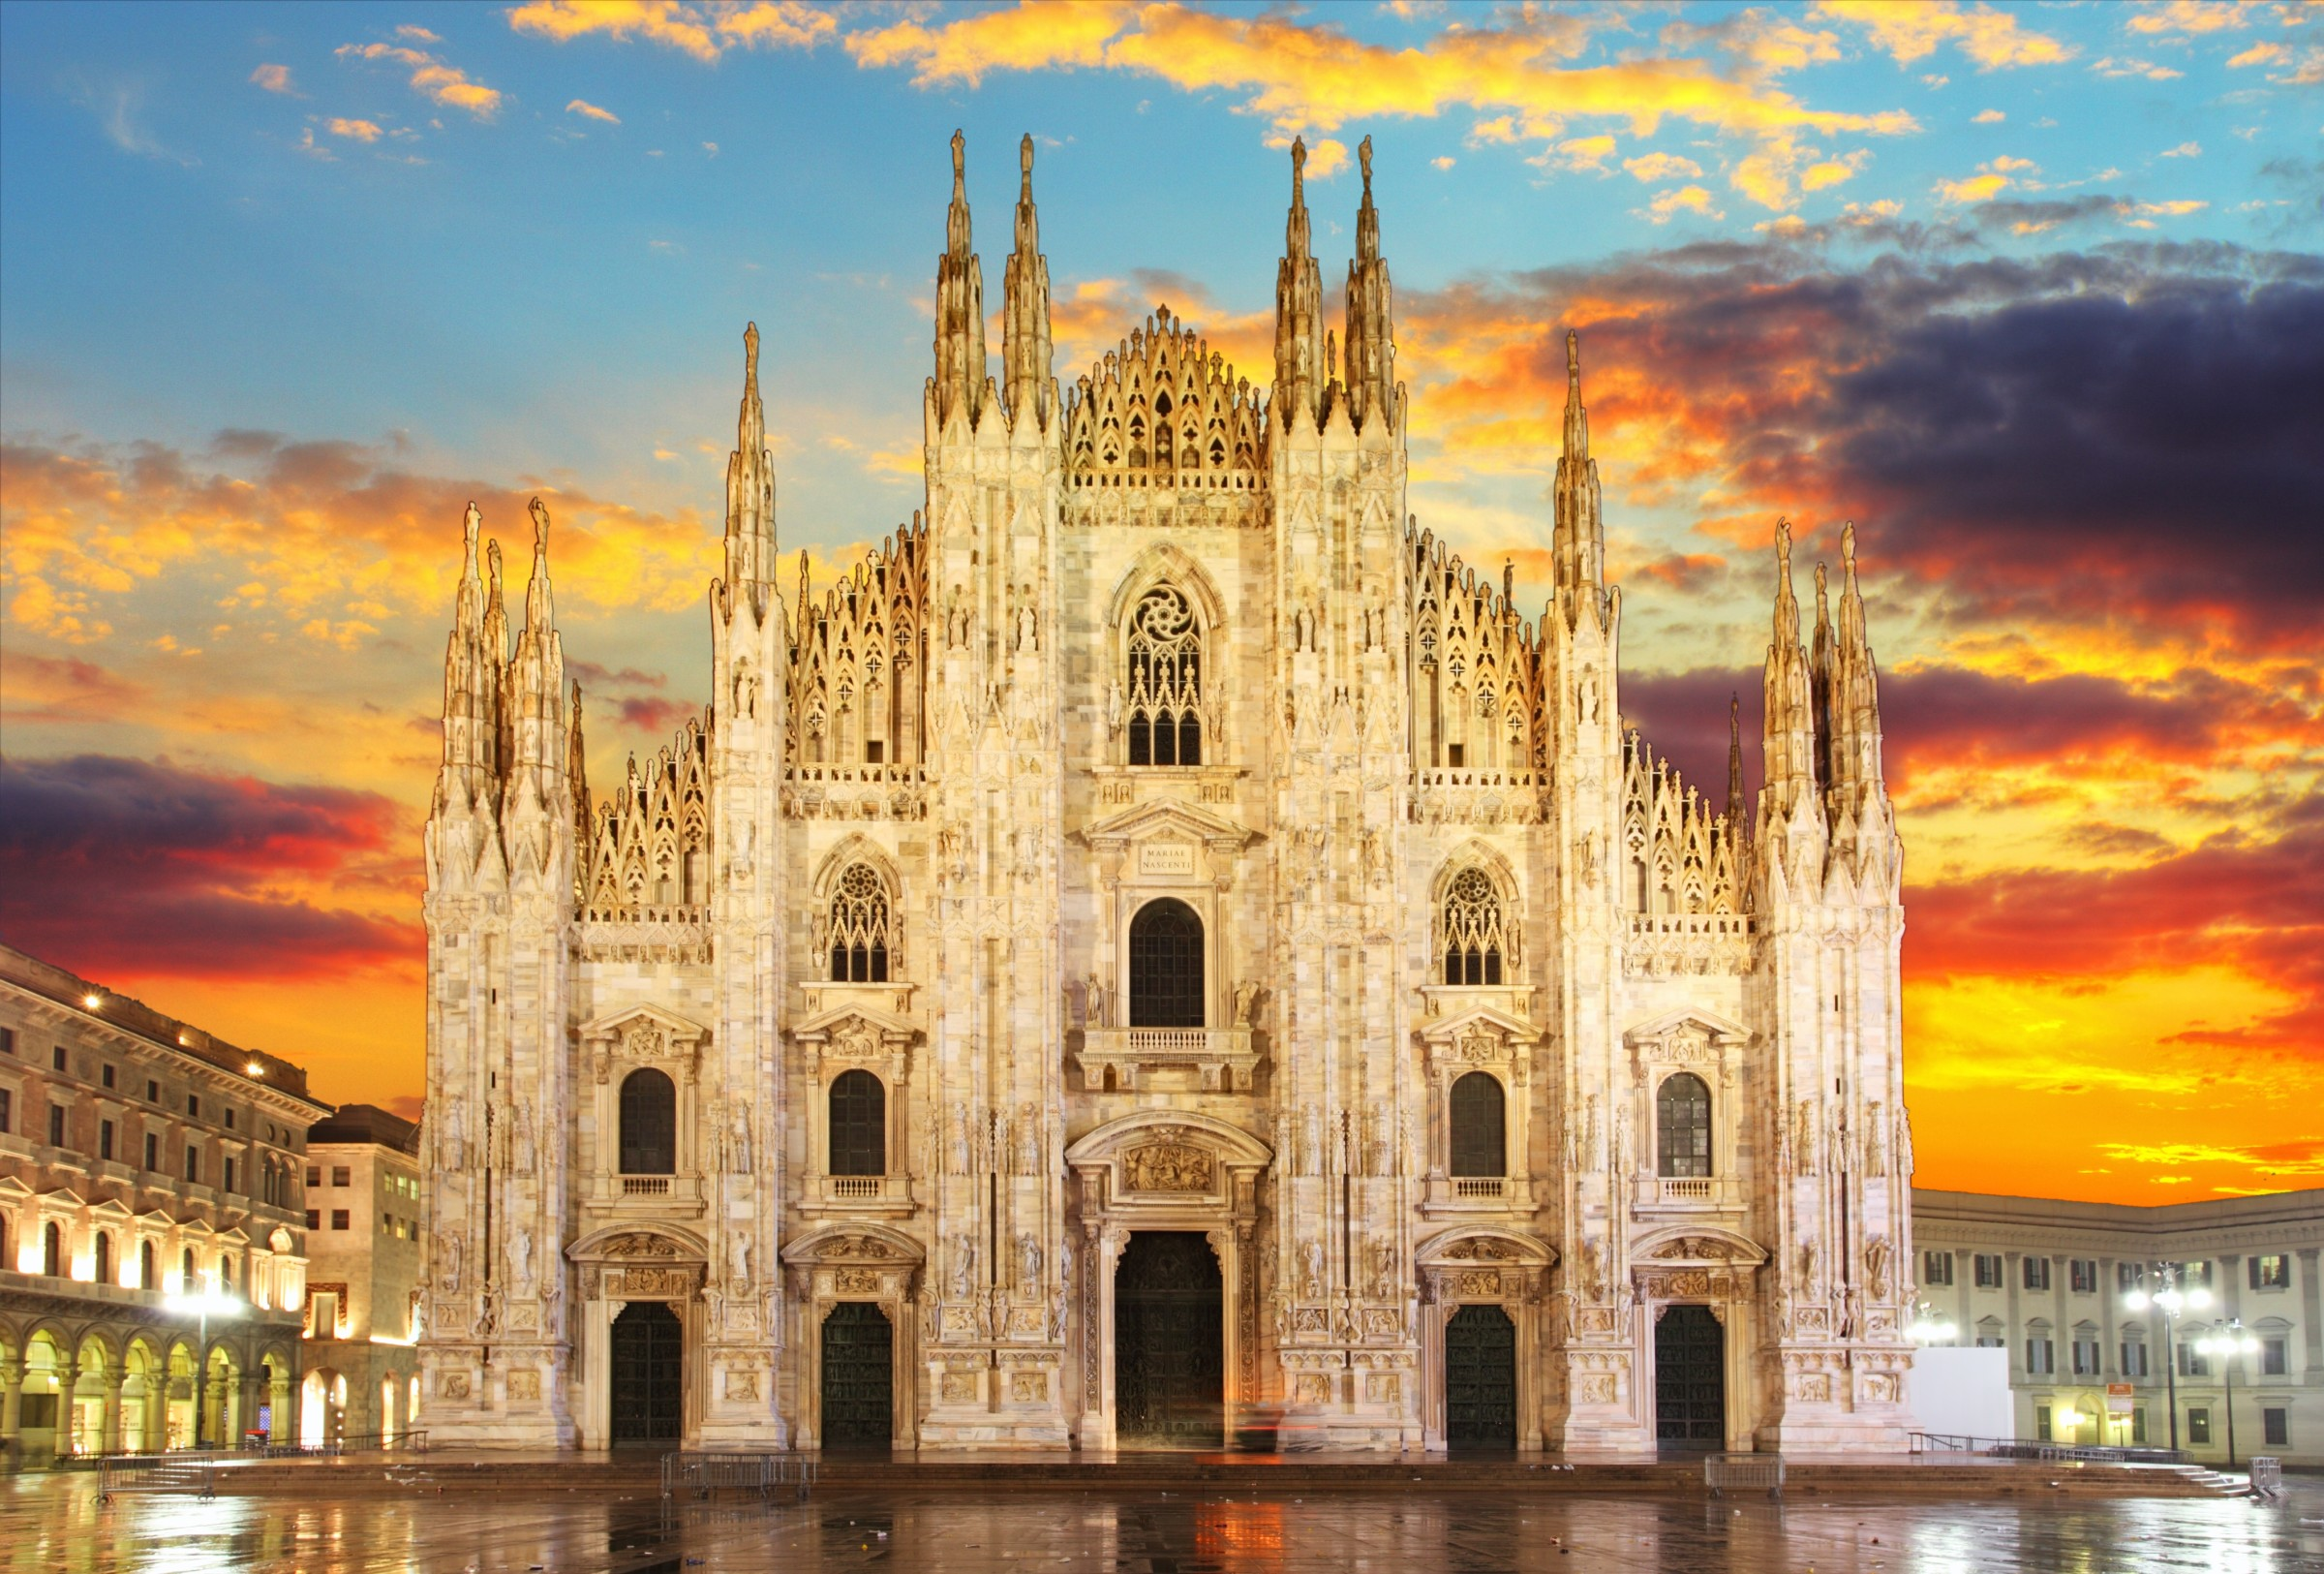 Milan - Duomo at dramatic sunset in Italy